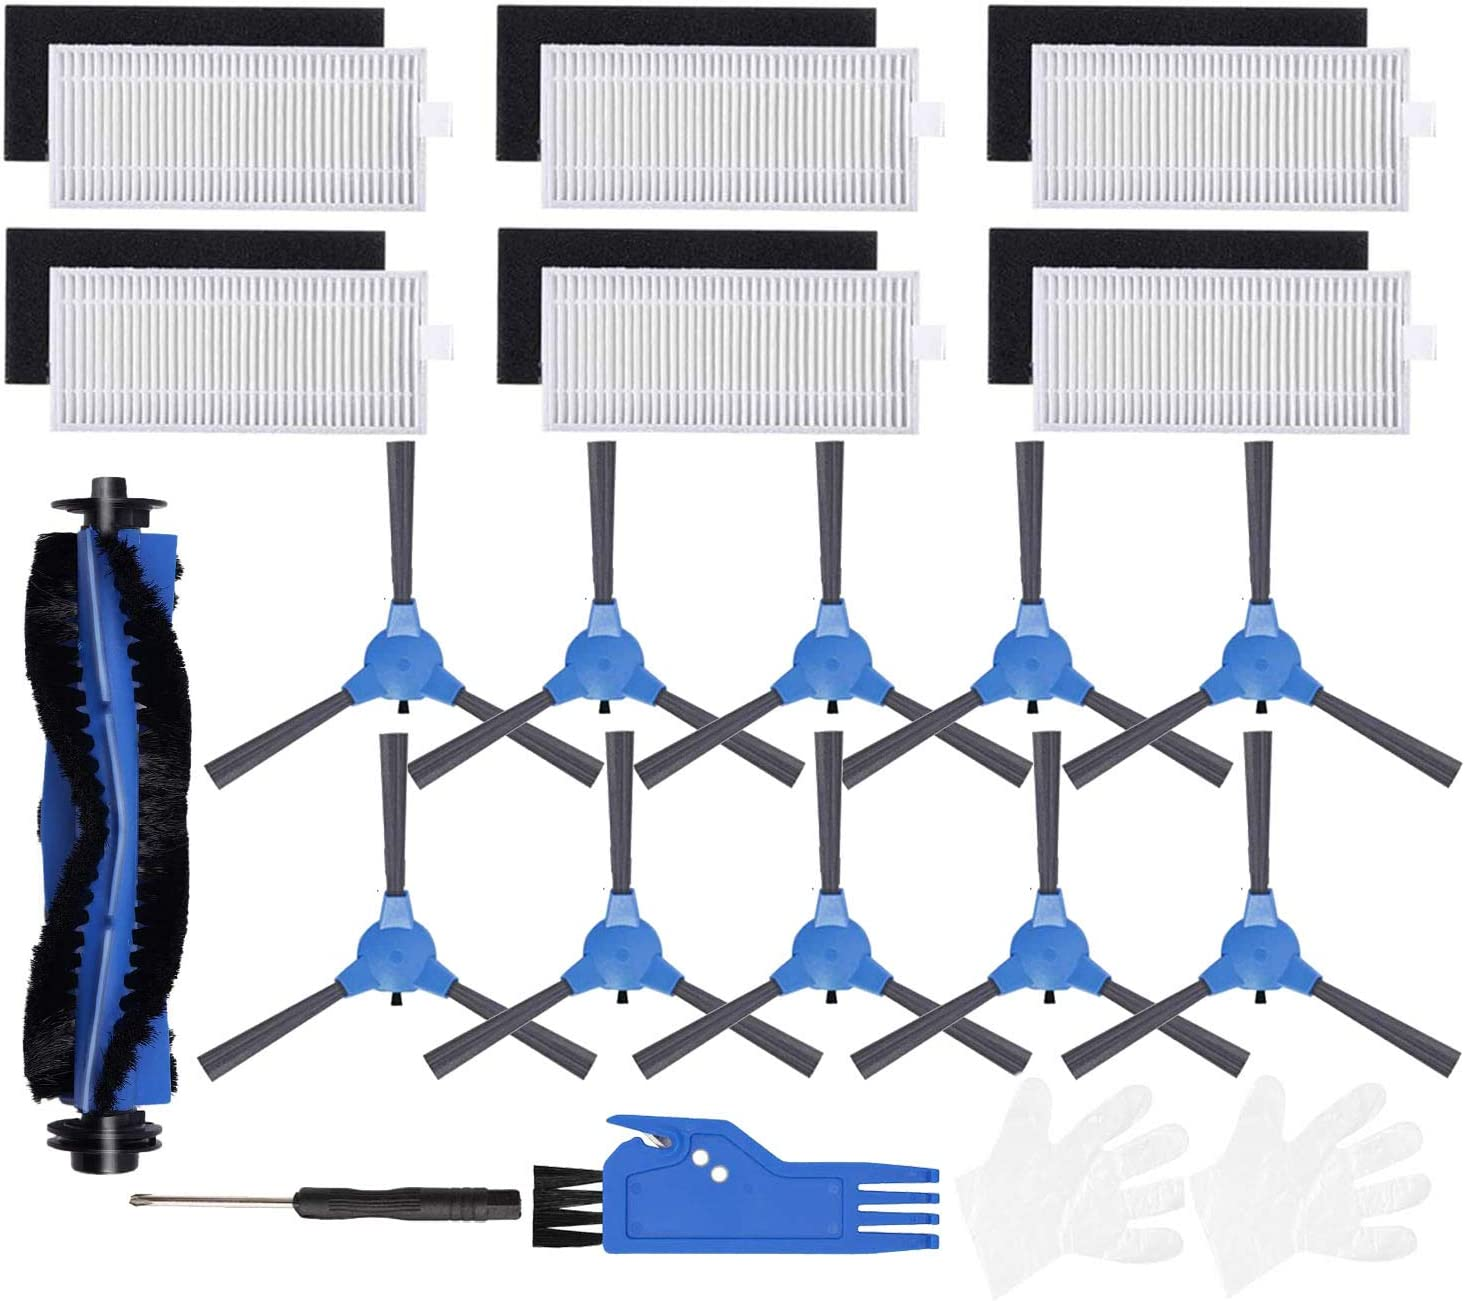 Set Of 5 For Robots 360 S6 Vacuum Cleaner Parts  Side Roller Brushes Filters Hot